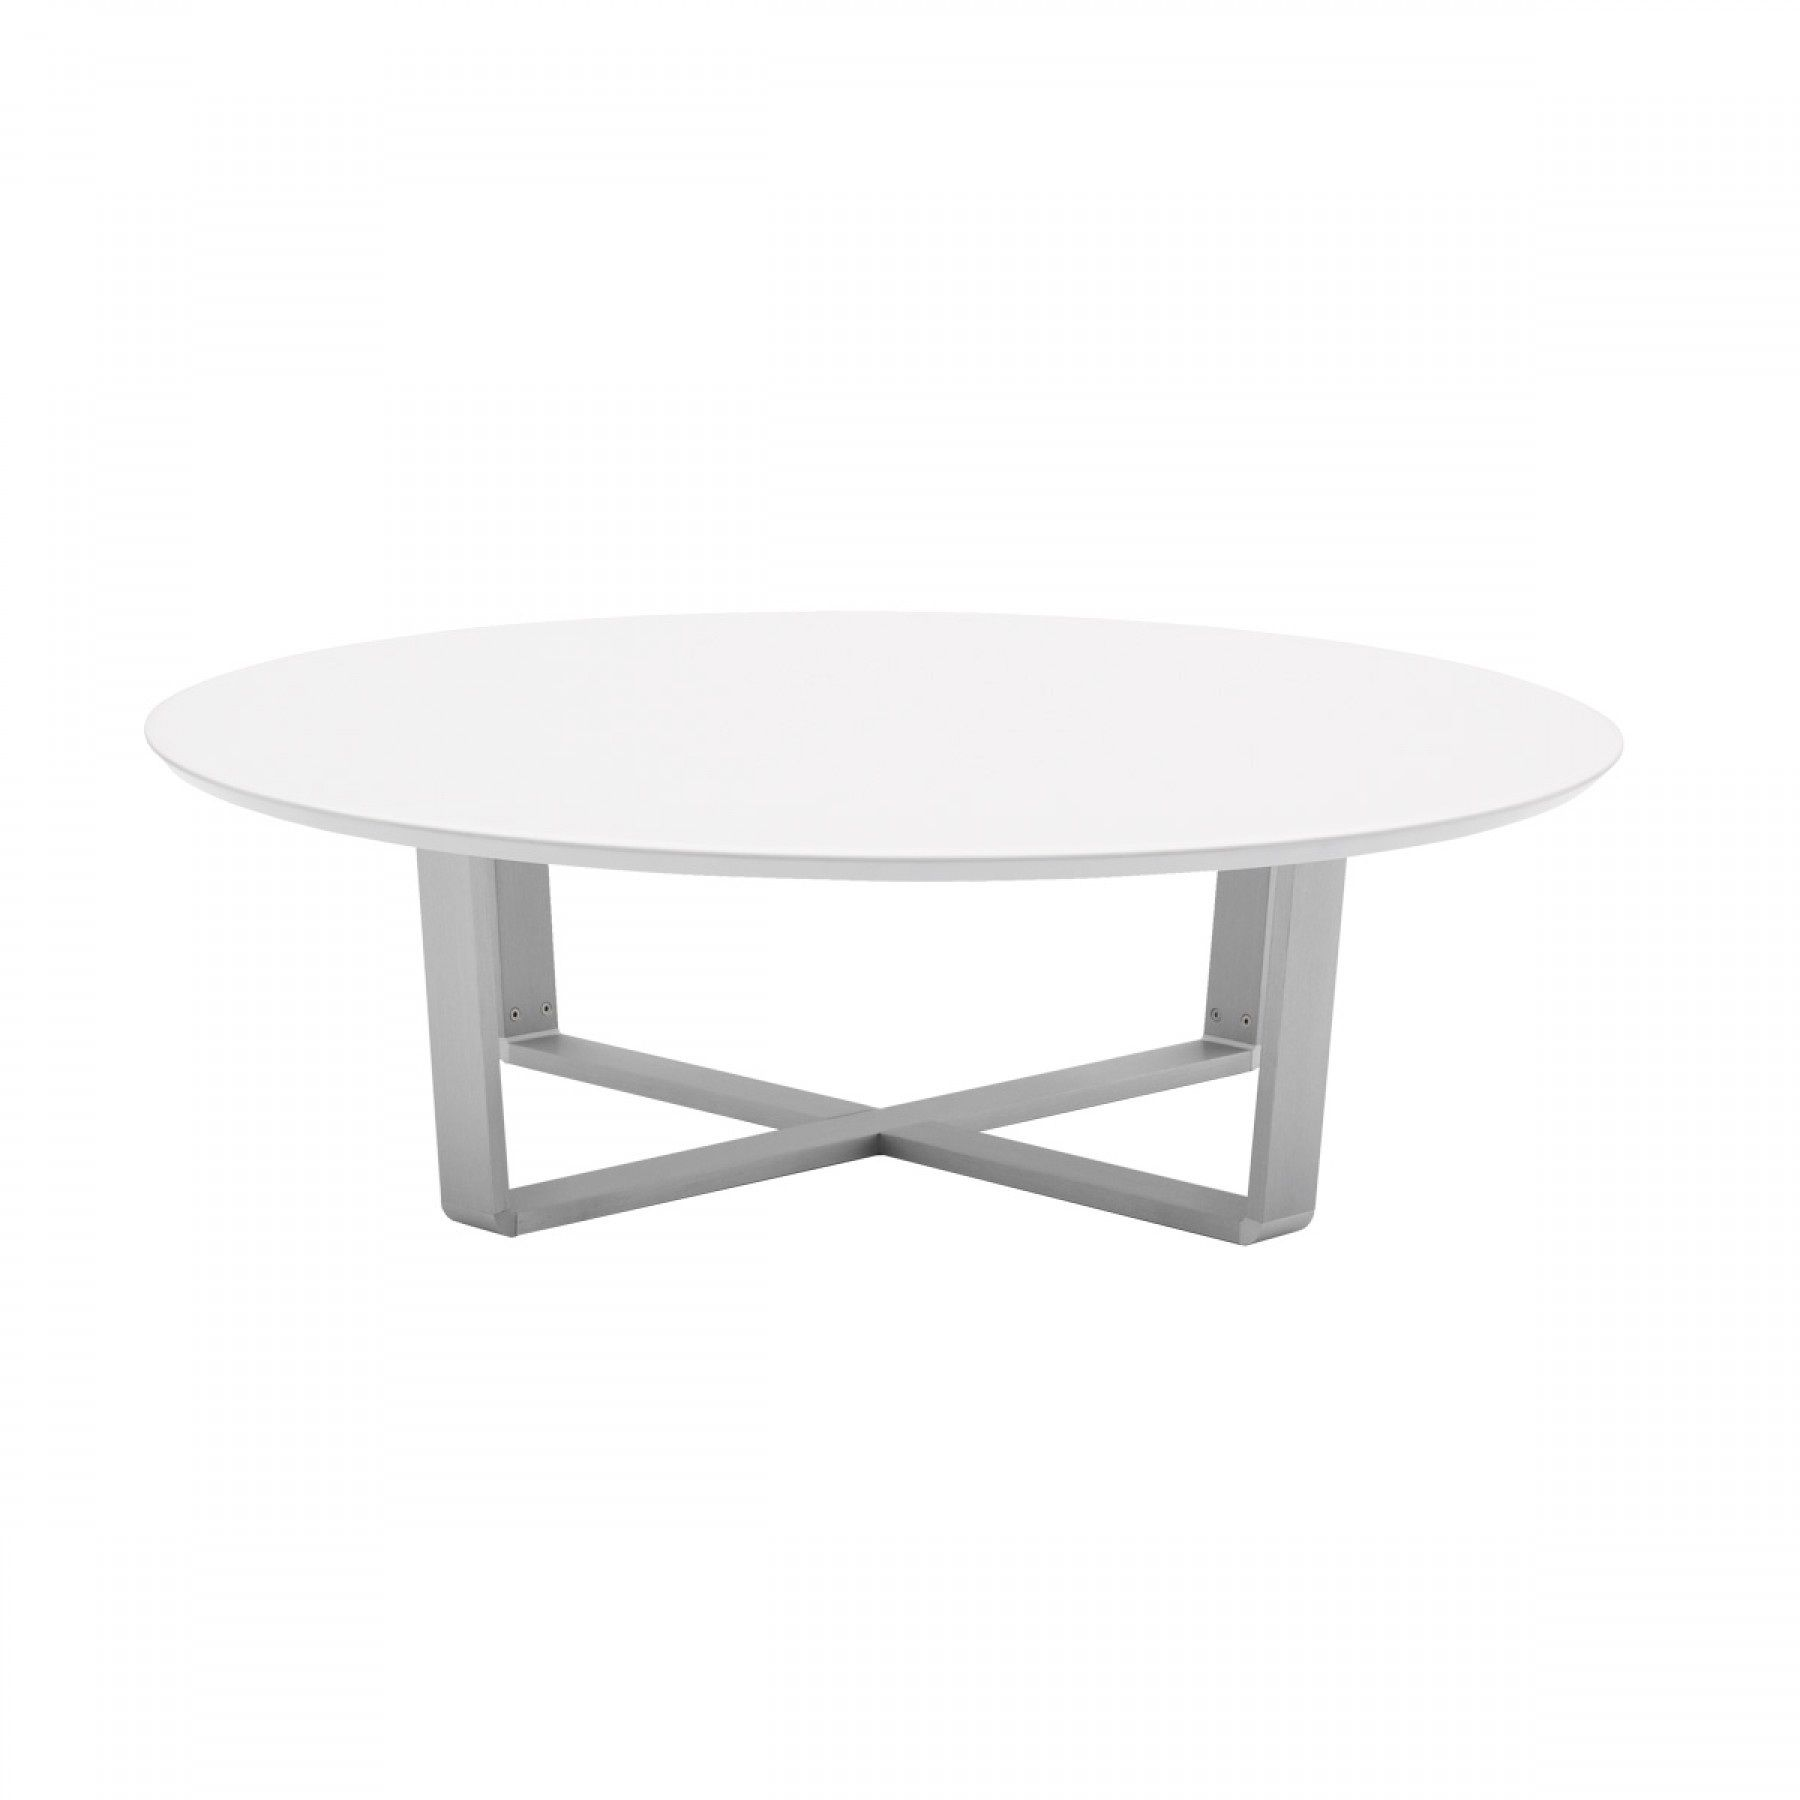 20 Round White Coffee Table Home fice Furniture Set Check more